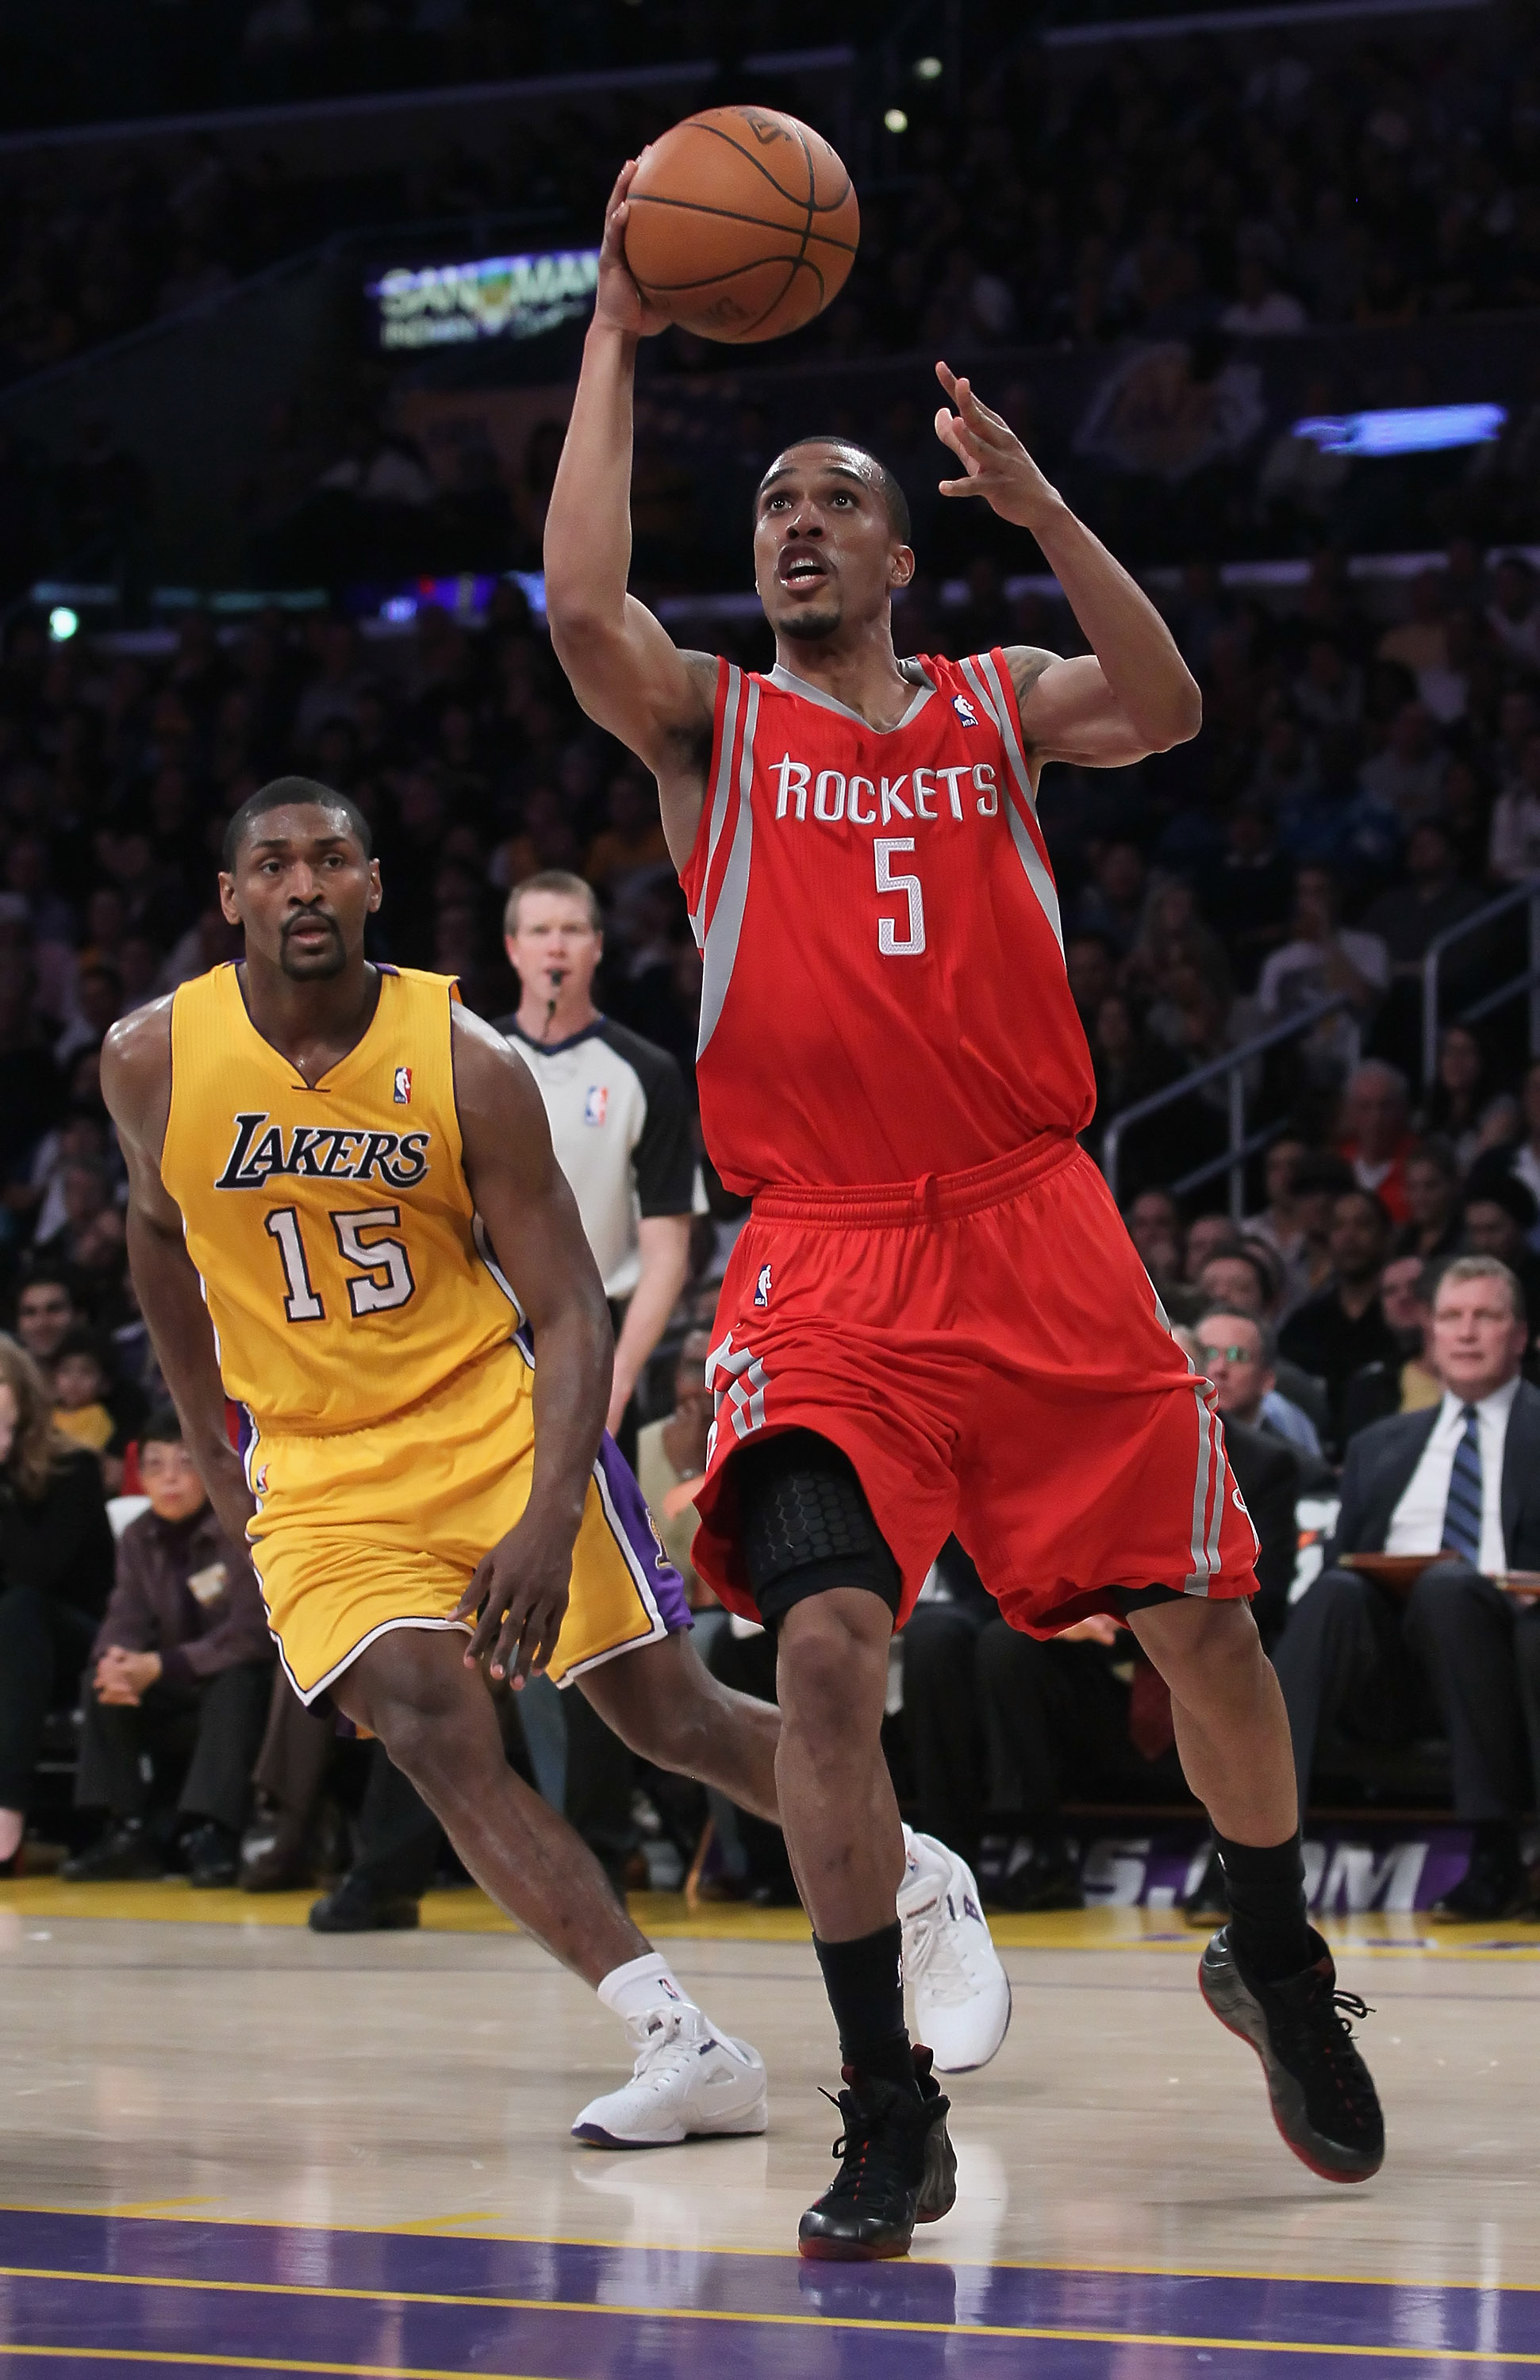 LOS ANGELES, CA - FEBRUARY 01:  Courtney Lee #5 of the Houston Rockets drives past Ron Artest #15 of the Los Angeles Lakers in the second half at Staples Center on February 1, 2011 in Los Angeles, California. The Lakers defeated the Rockets 114-106. NOTE